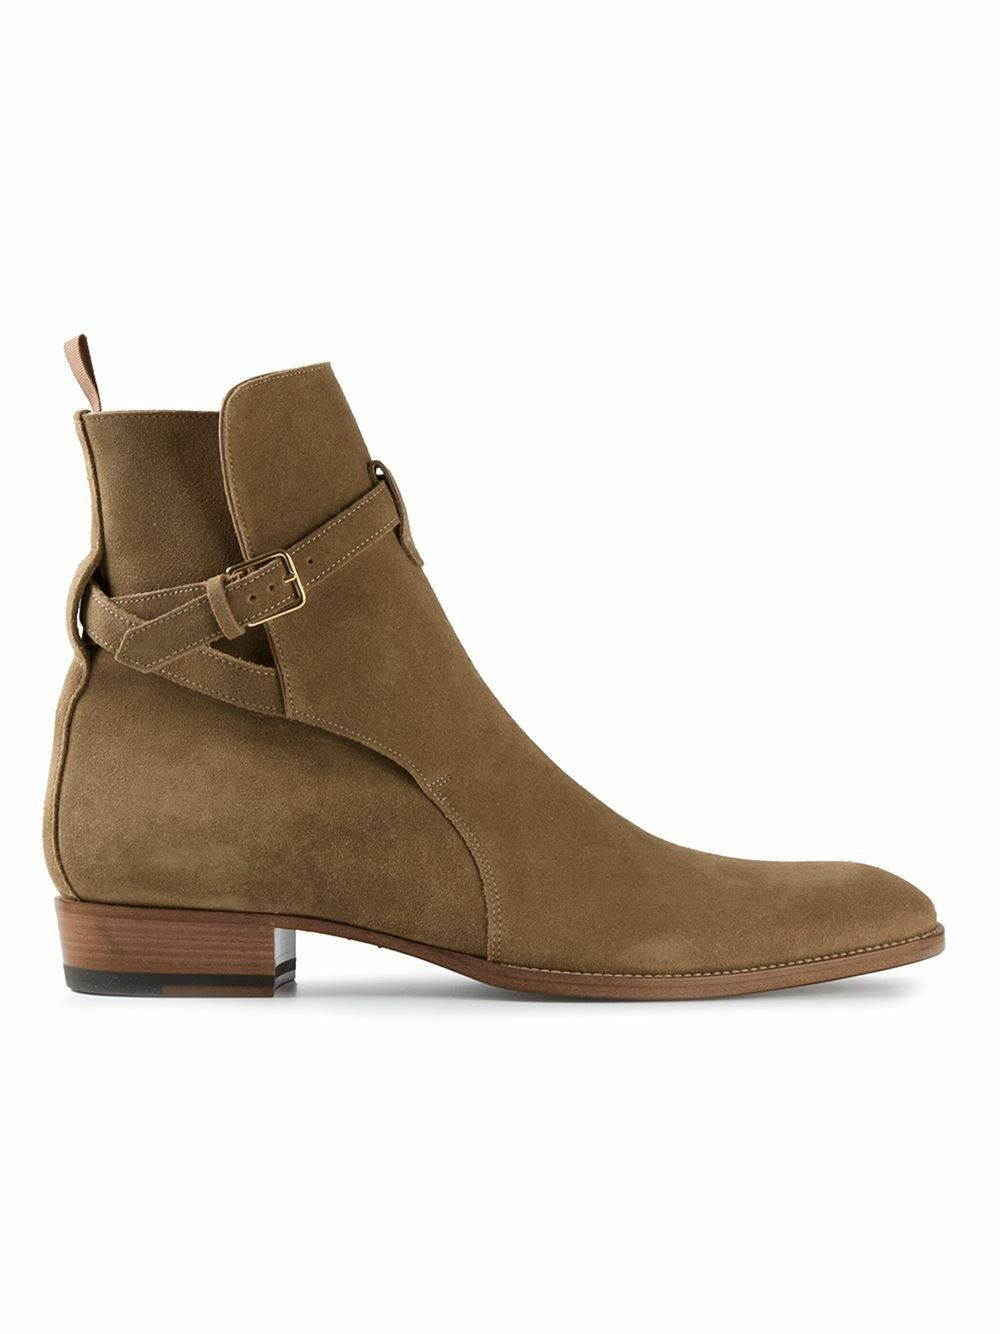 Man Chelsea Khaki Suede Buckle Strap Boots,Casual Dress Ankle Jodhpur Boots,